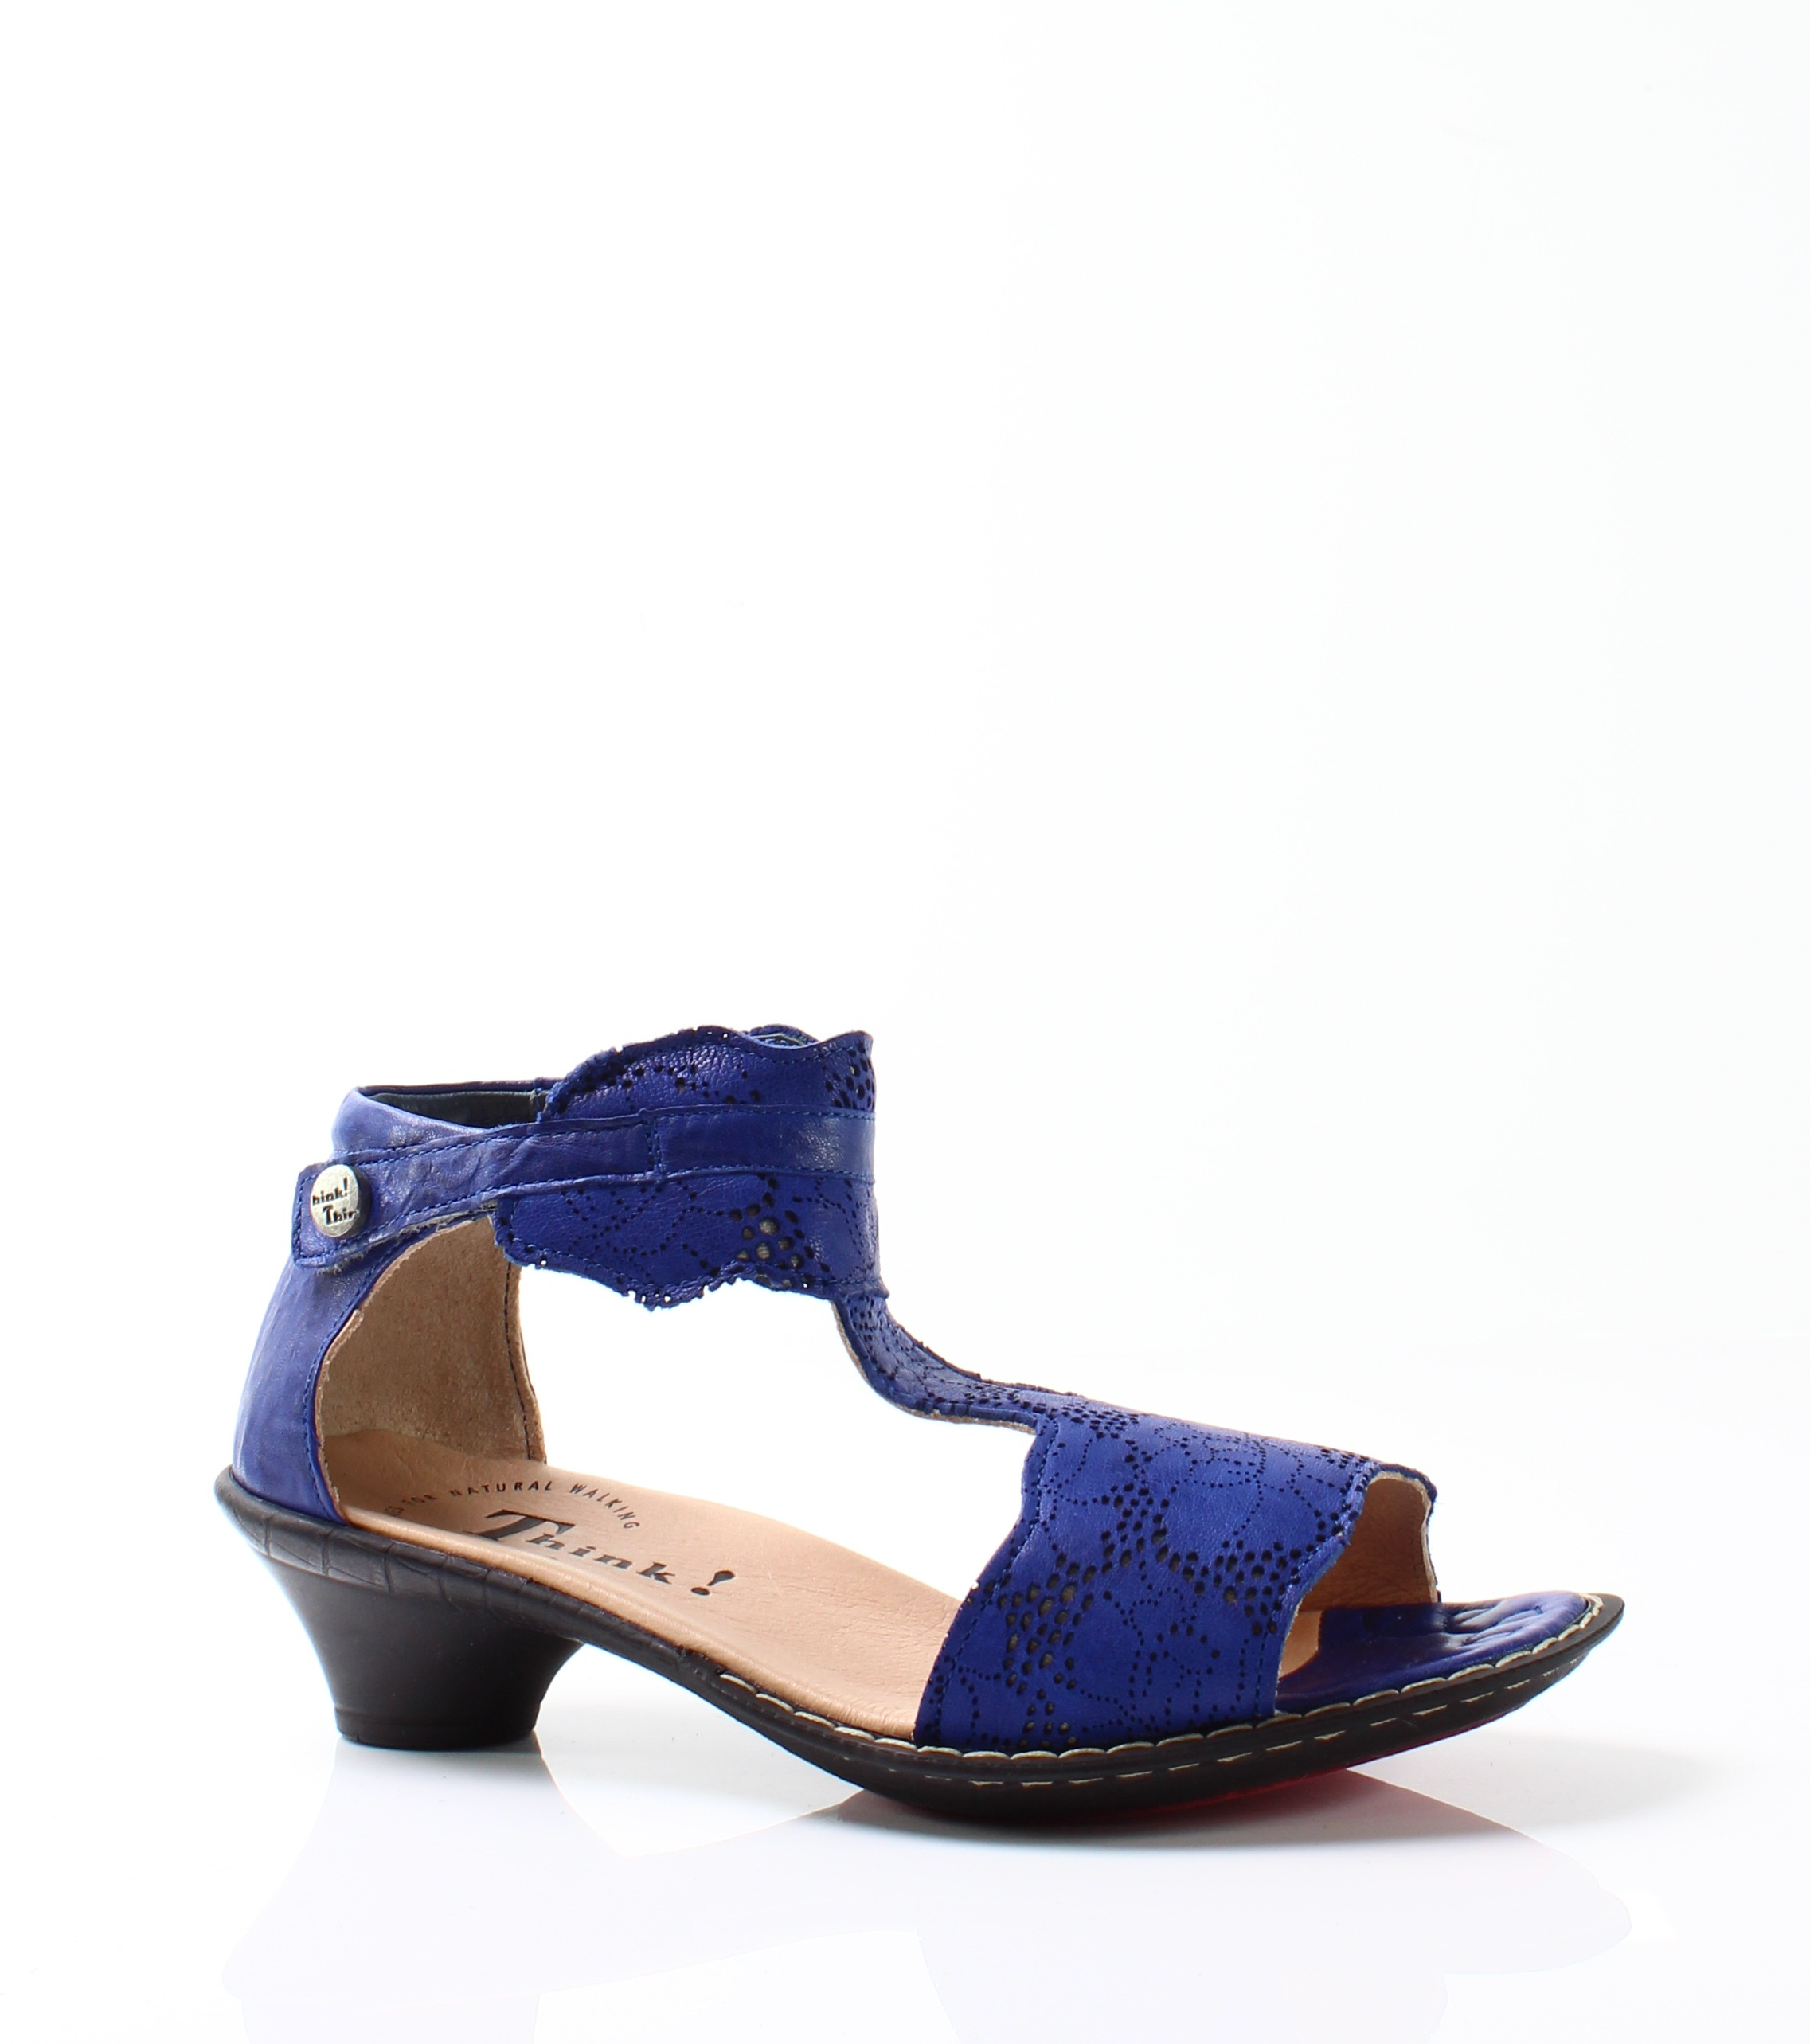 Think! New Blue Women's Shoes Size 4M Ankle Strap Suede Sandal by Think!